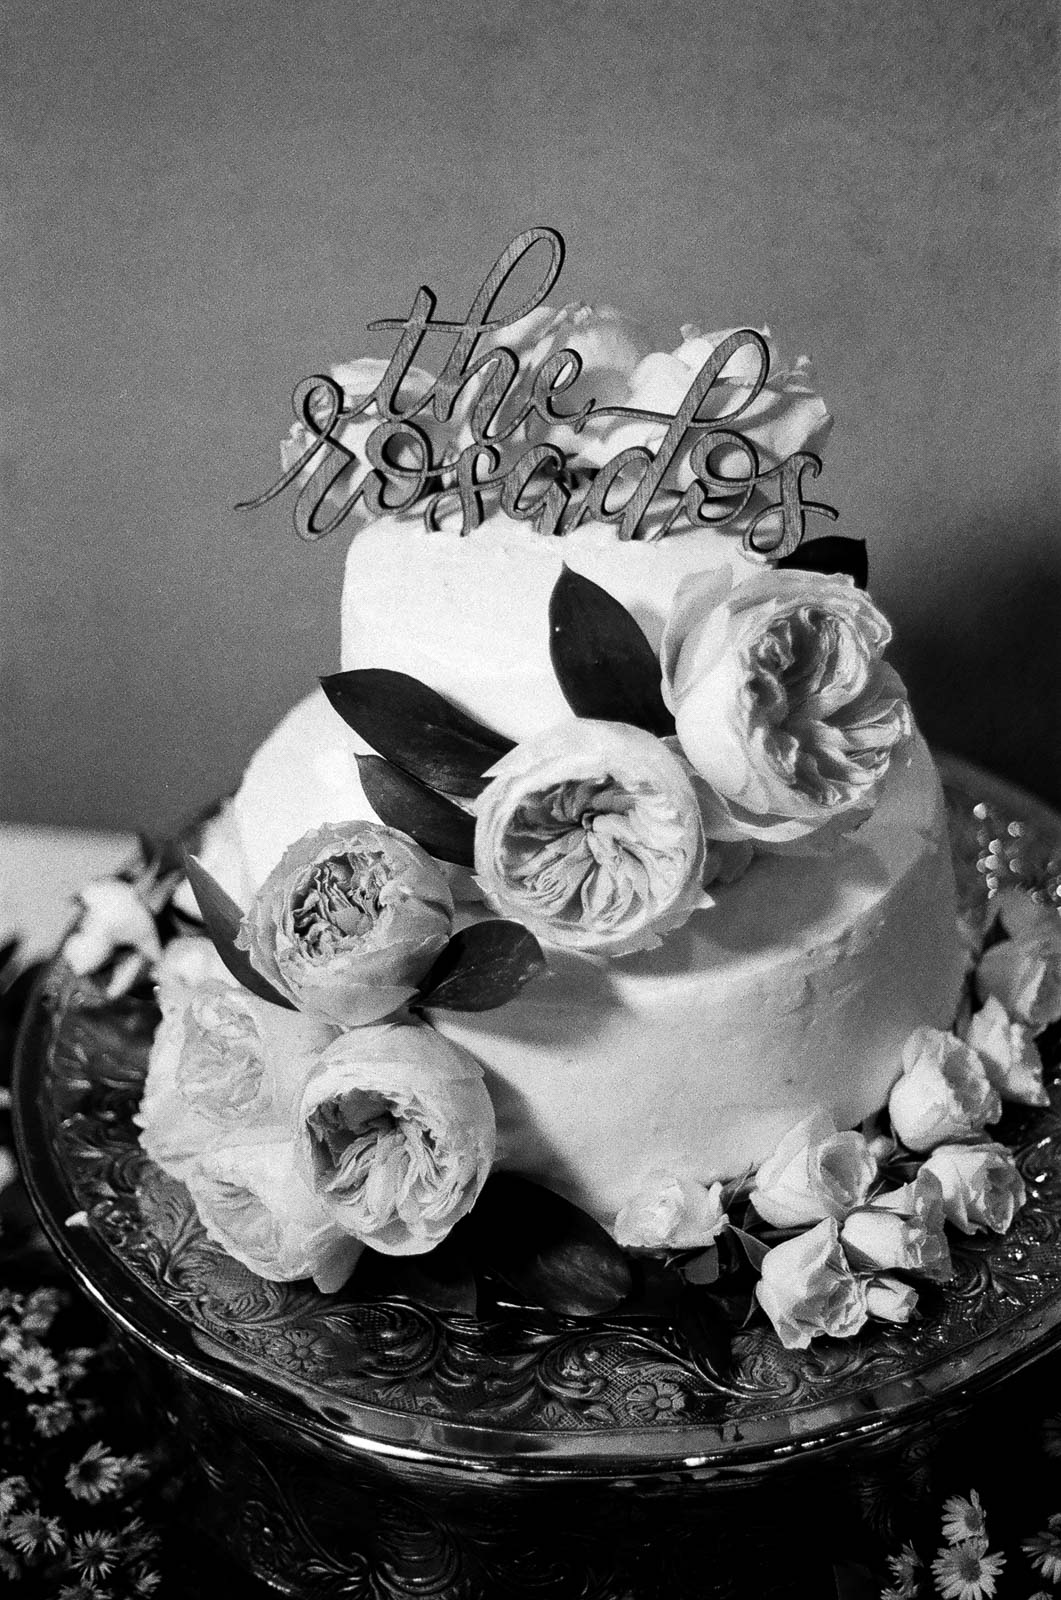 black and white 35mm film Photograph of Wedding cake taken by Joseph Barber wedding photography newport beach